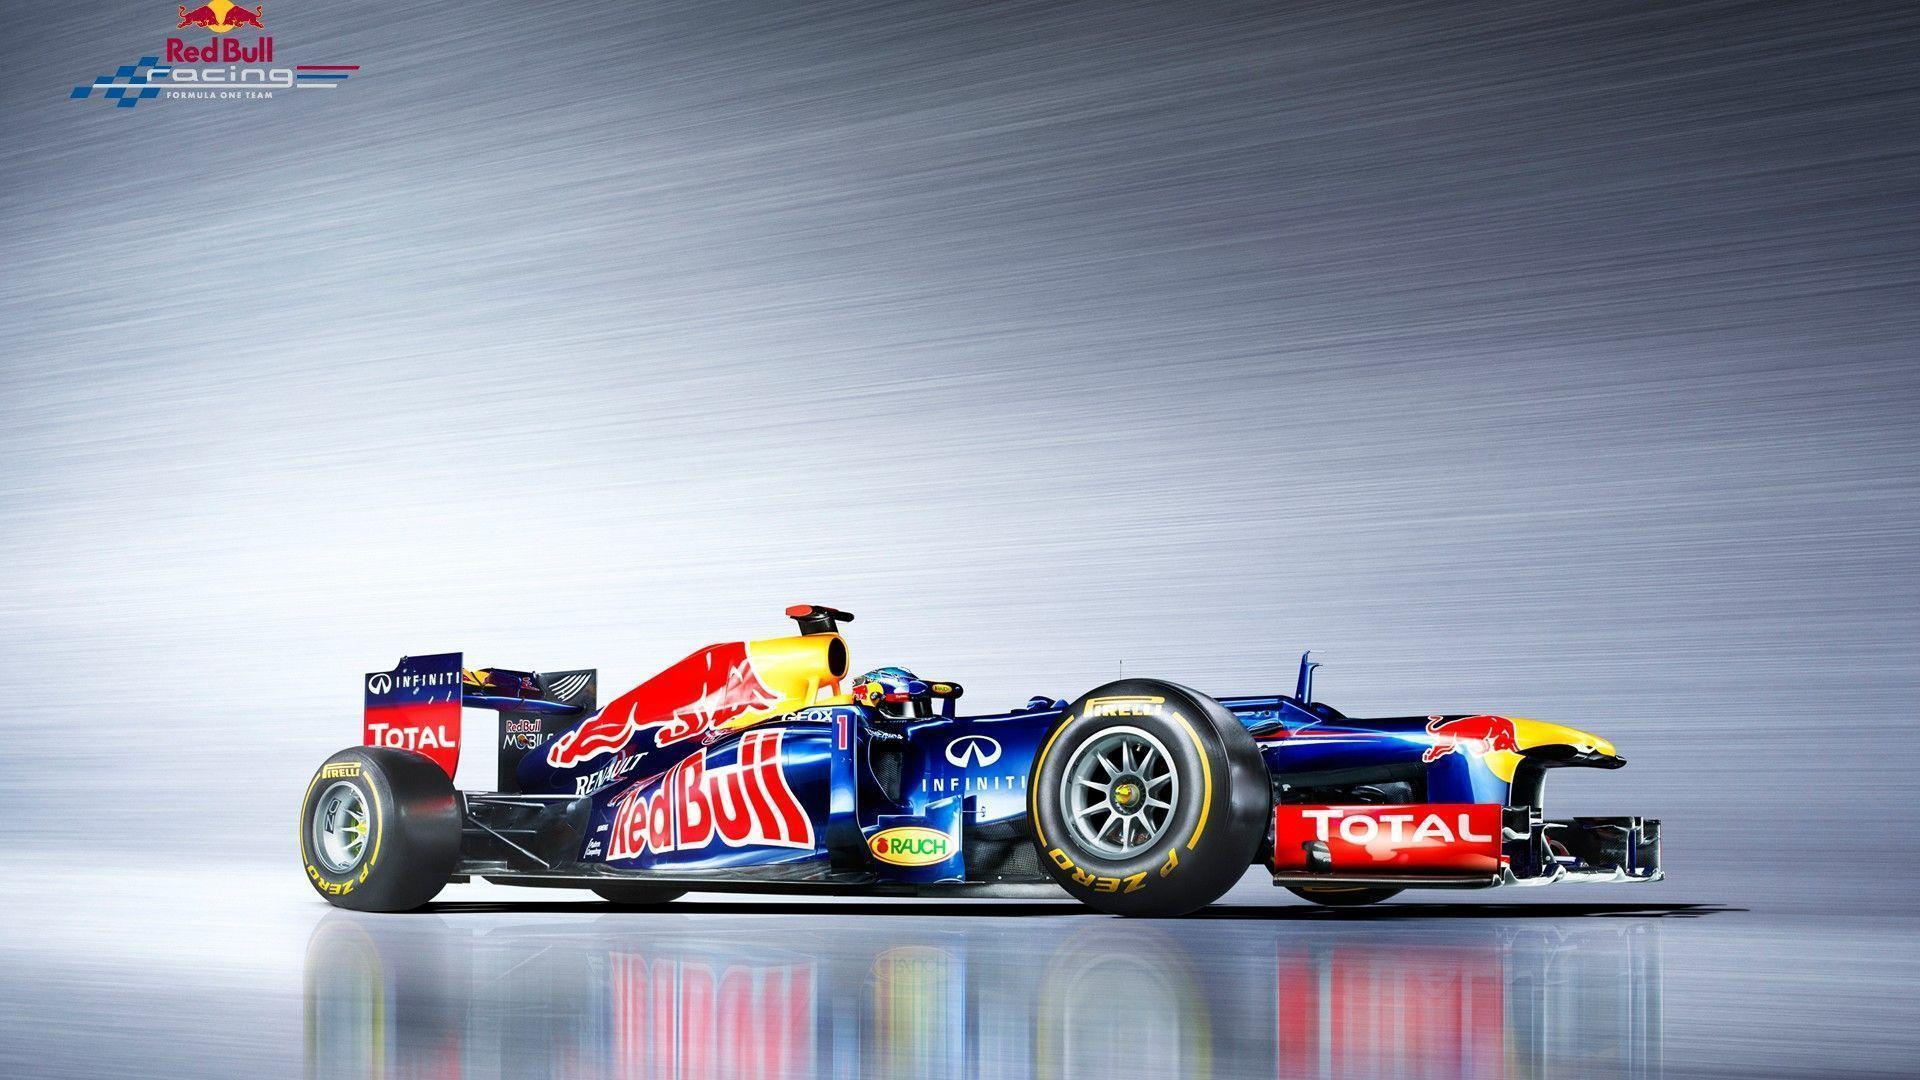 WallpapersWidecom Formula 1 HD Desktop Wallpapers for 4K